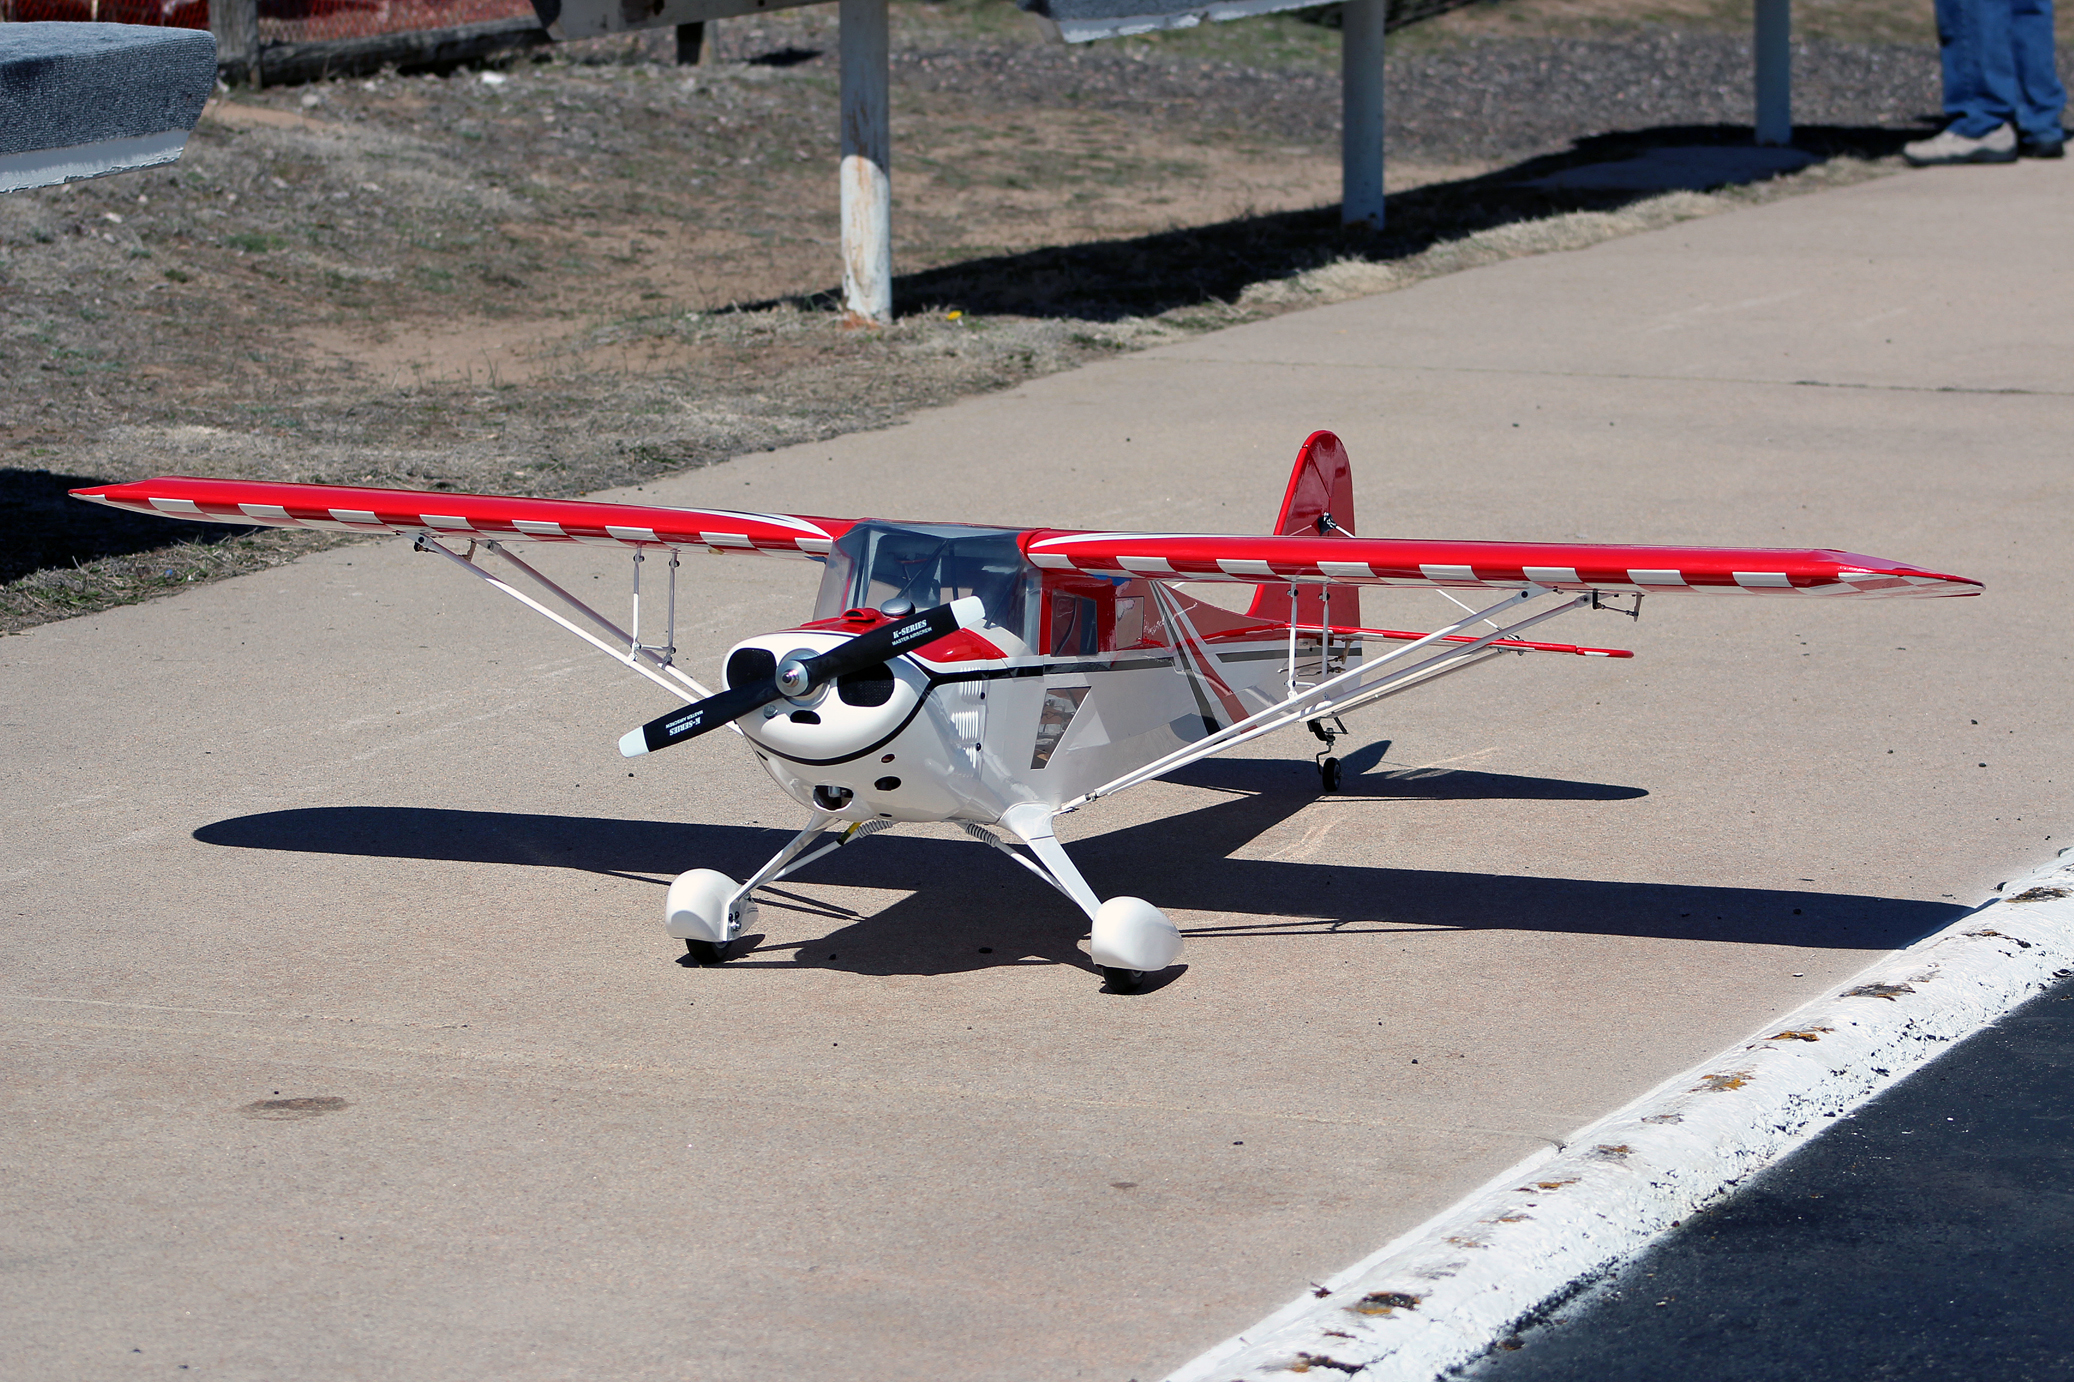 Click image for larger version  Name:Taylorcraft8.jpg Views:39 Size:2.39 MB ID:2156095